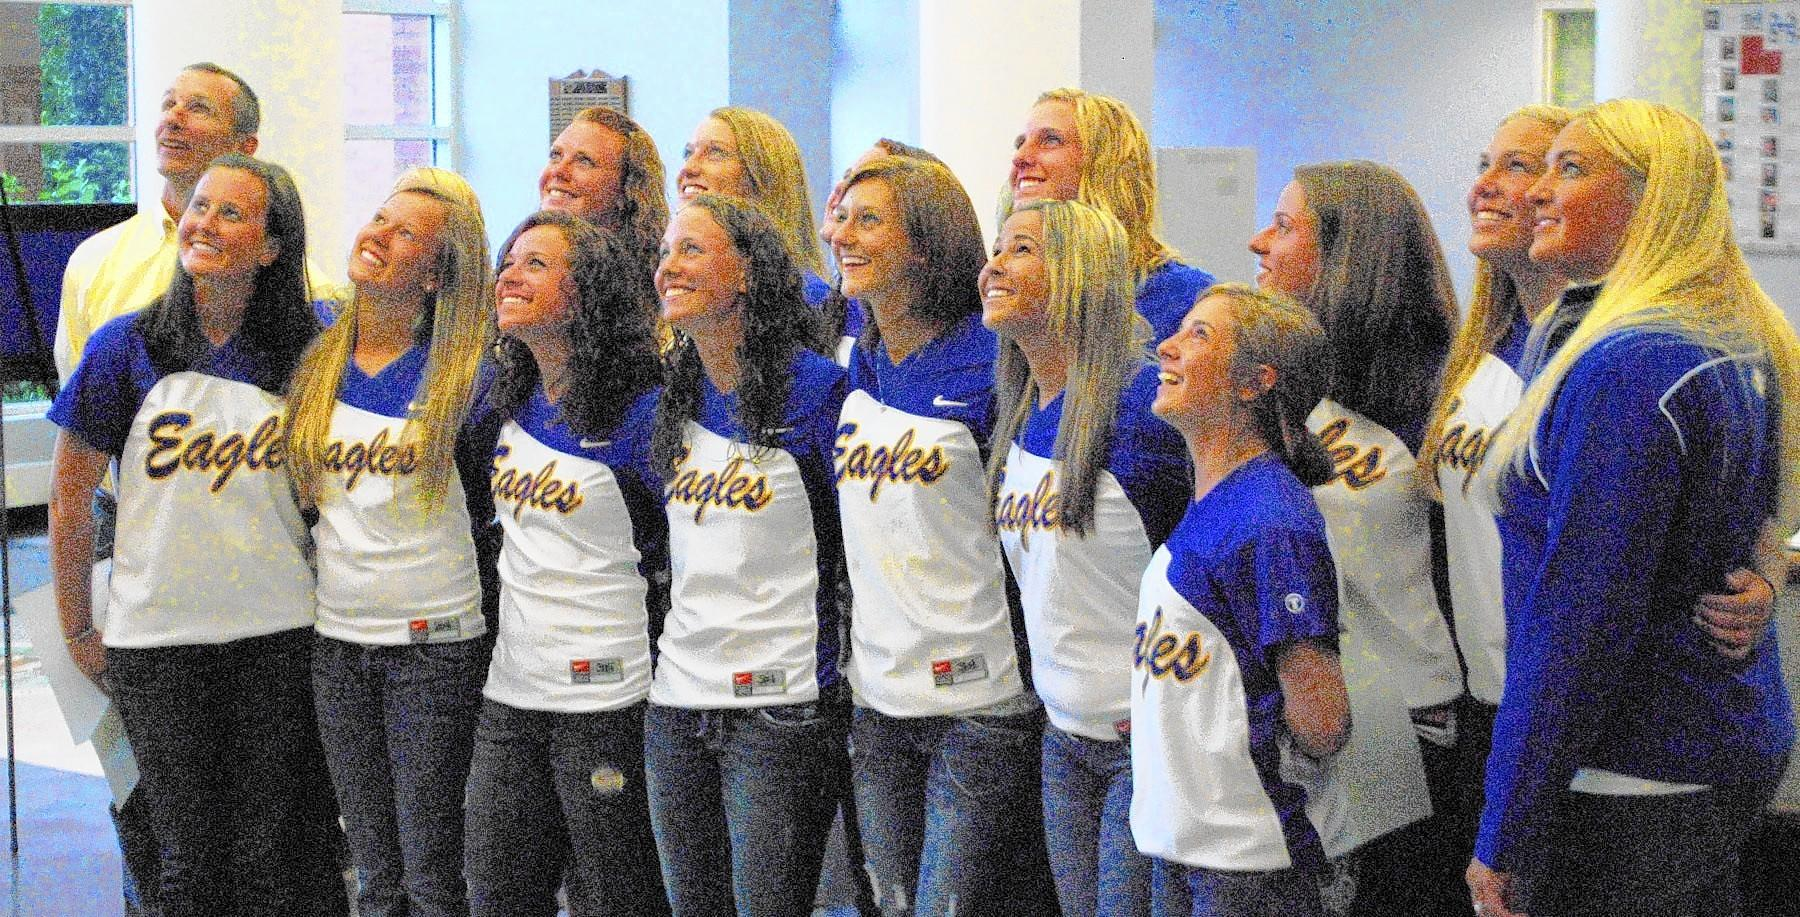 Sandburg Eagles softball team.